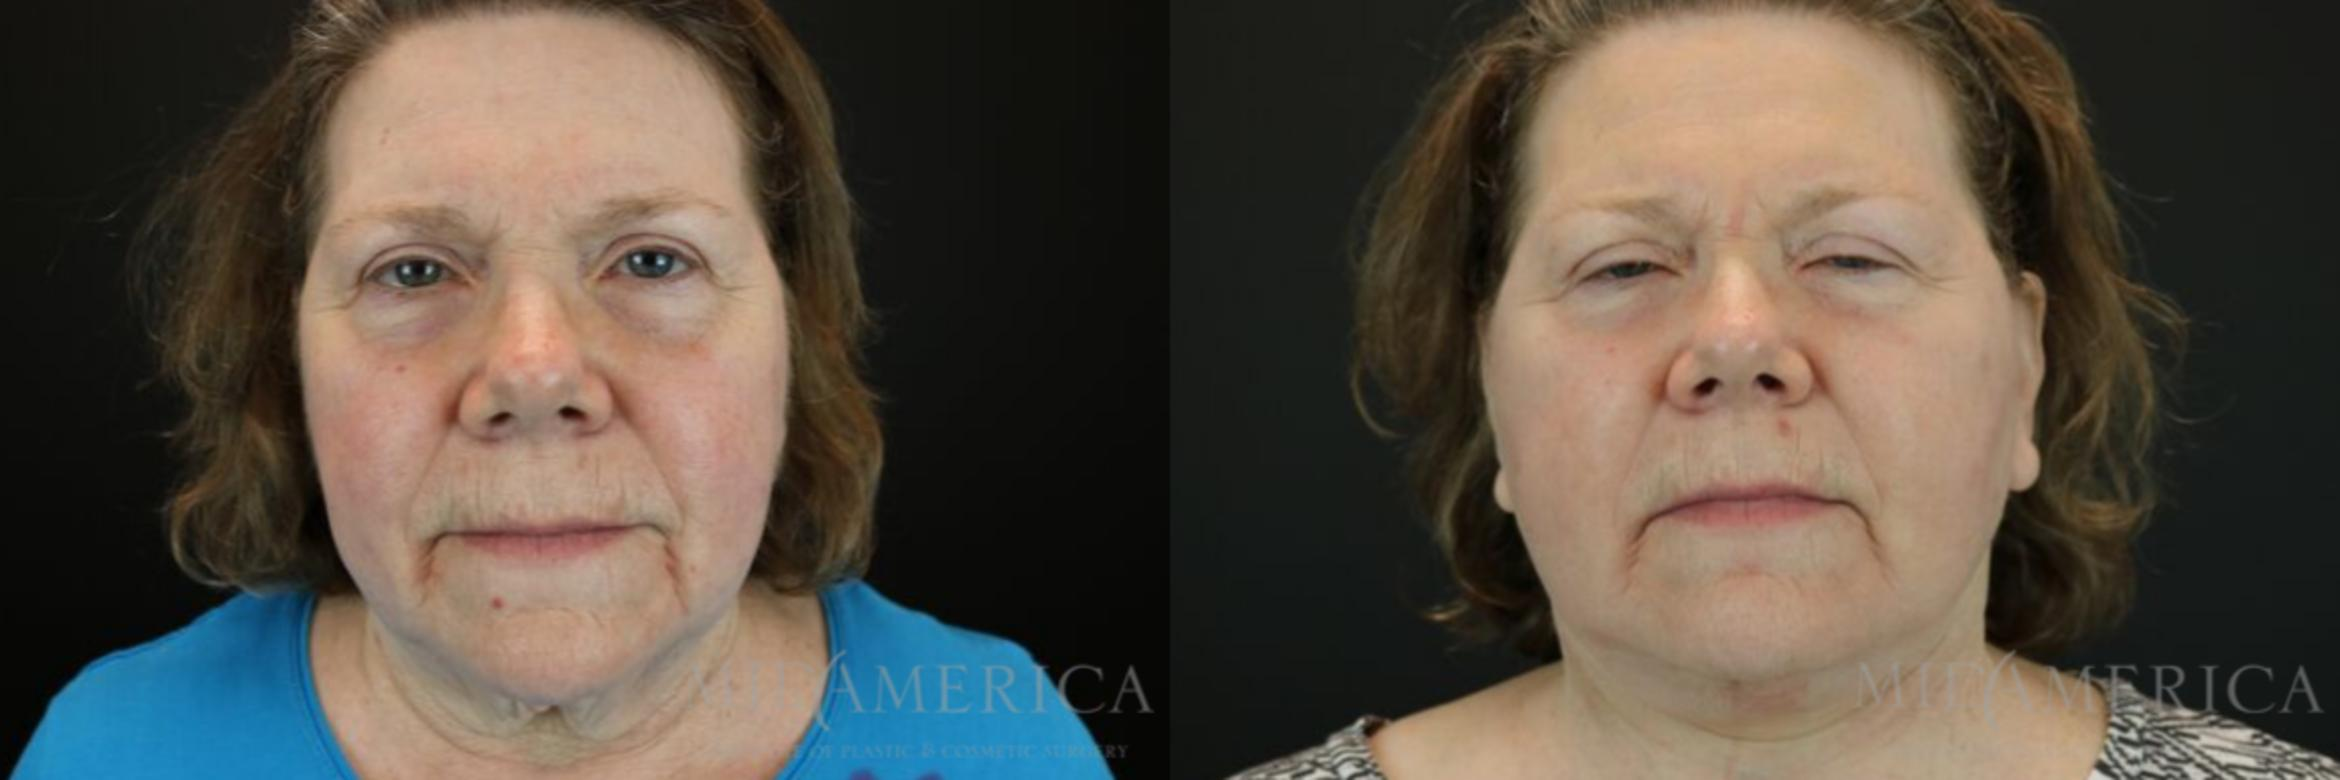 Facelift Case 109 Before & After View #1 | Glen Carbon, IL | MidAmerica Plastic Surgery